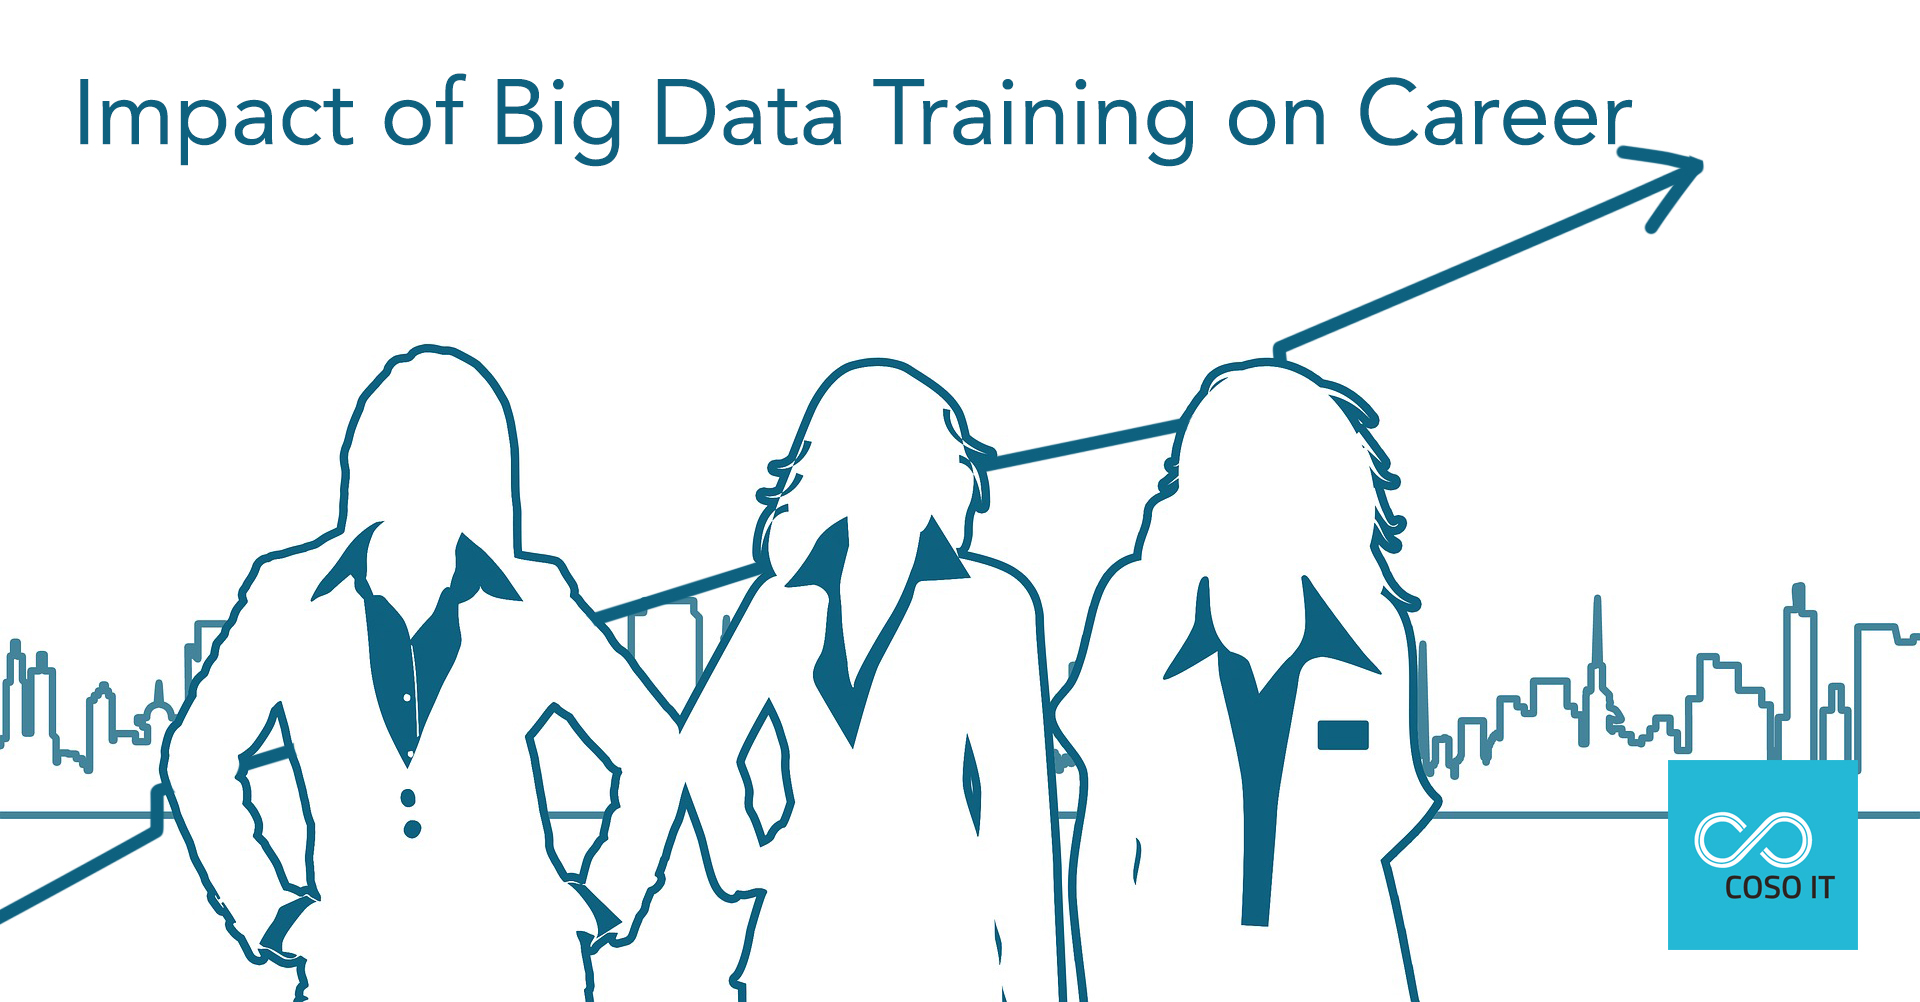 Impact of Big Data Training on Career